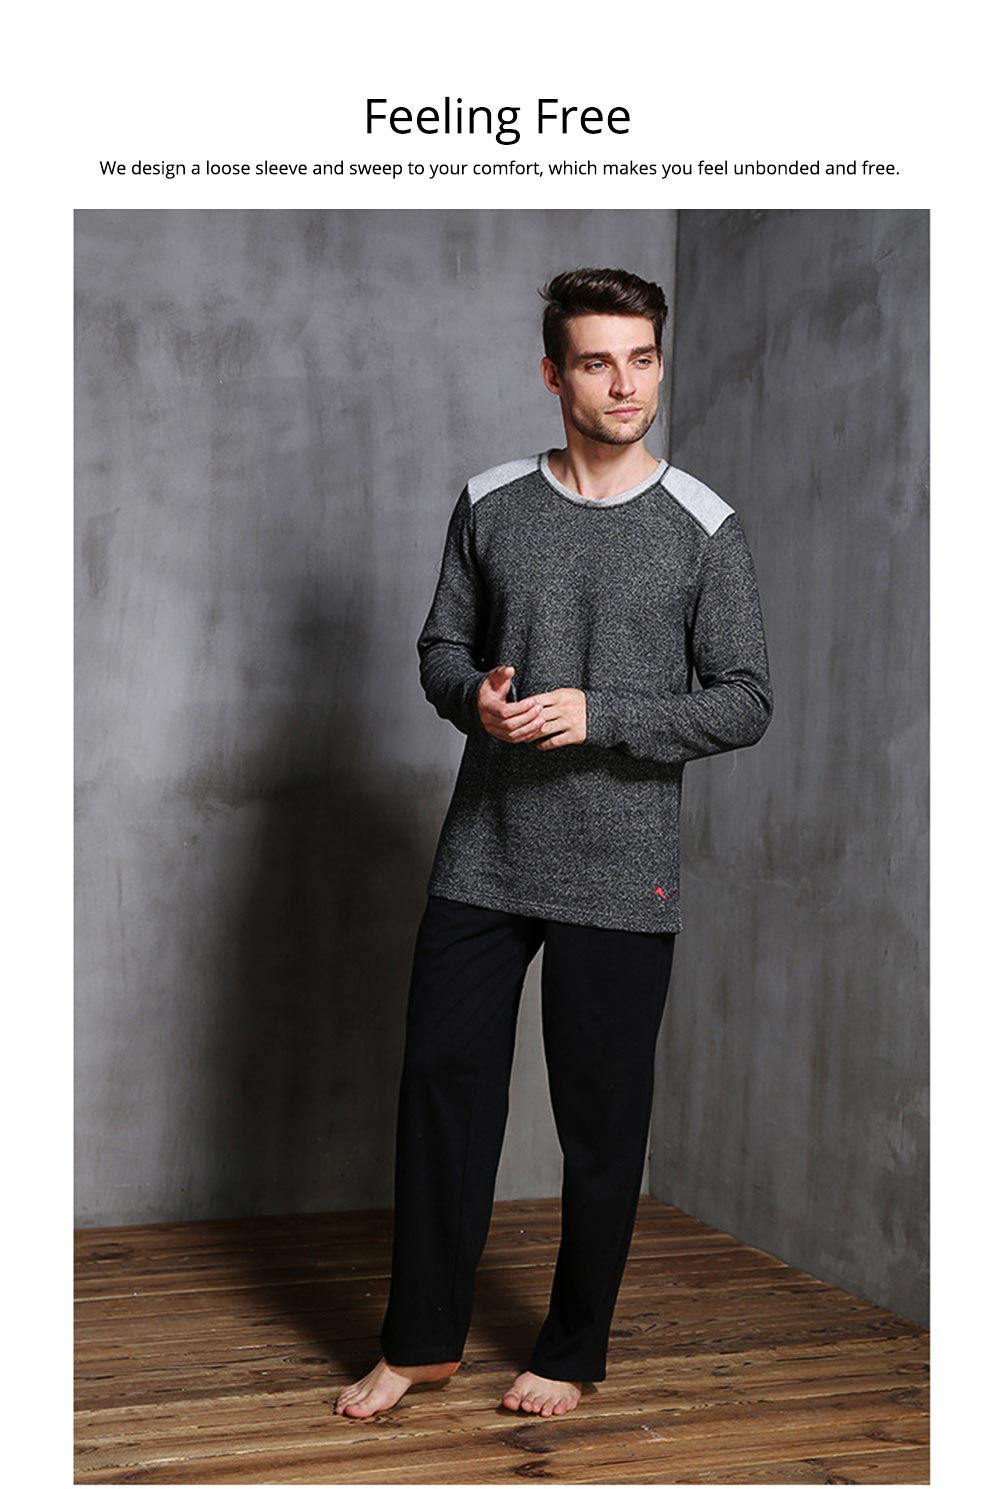 Foreign Trade Pajama for Men High Quality Soft Cotton Fabric Long Sleeves and Trousers Big and Tall Sleepwear 5